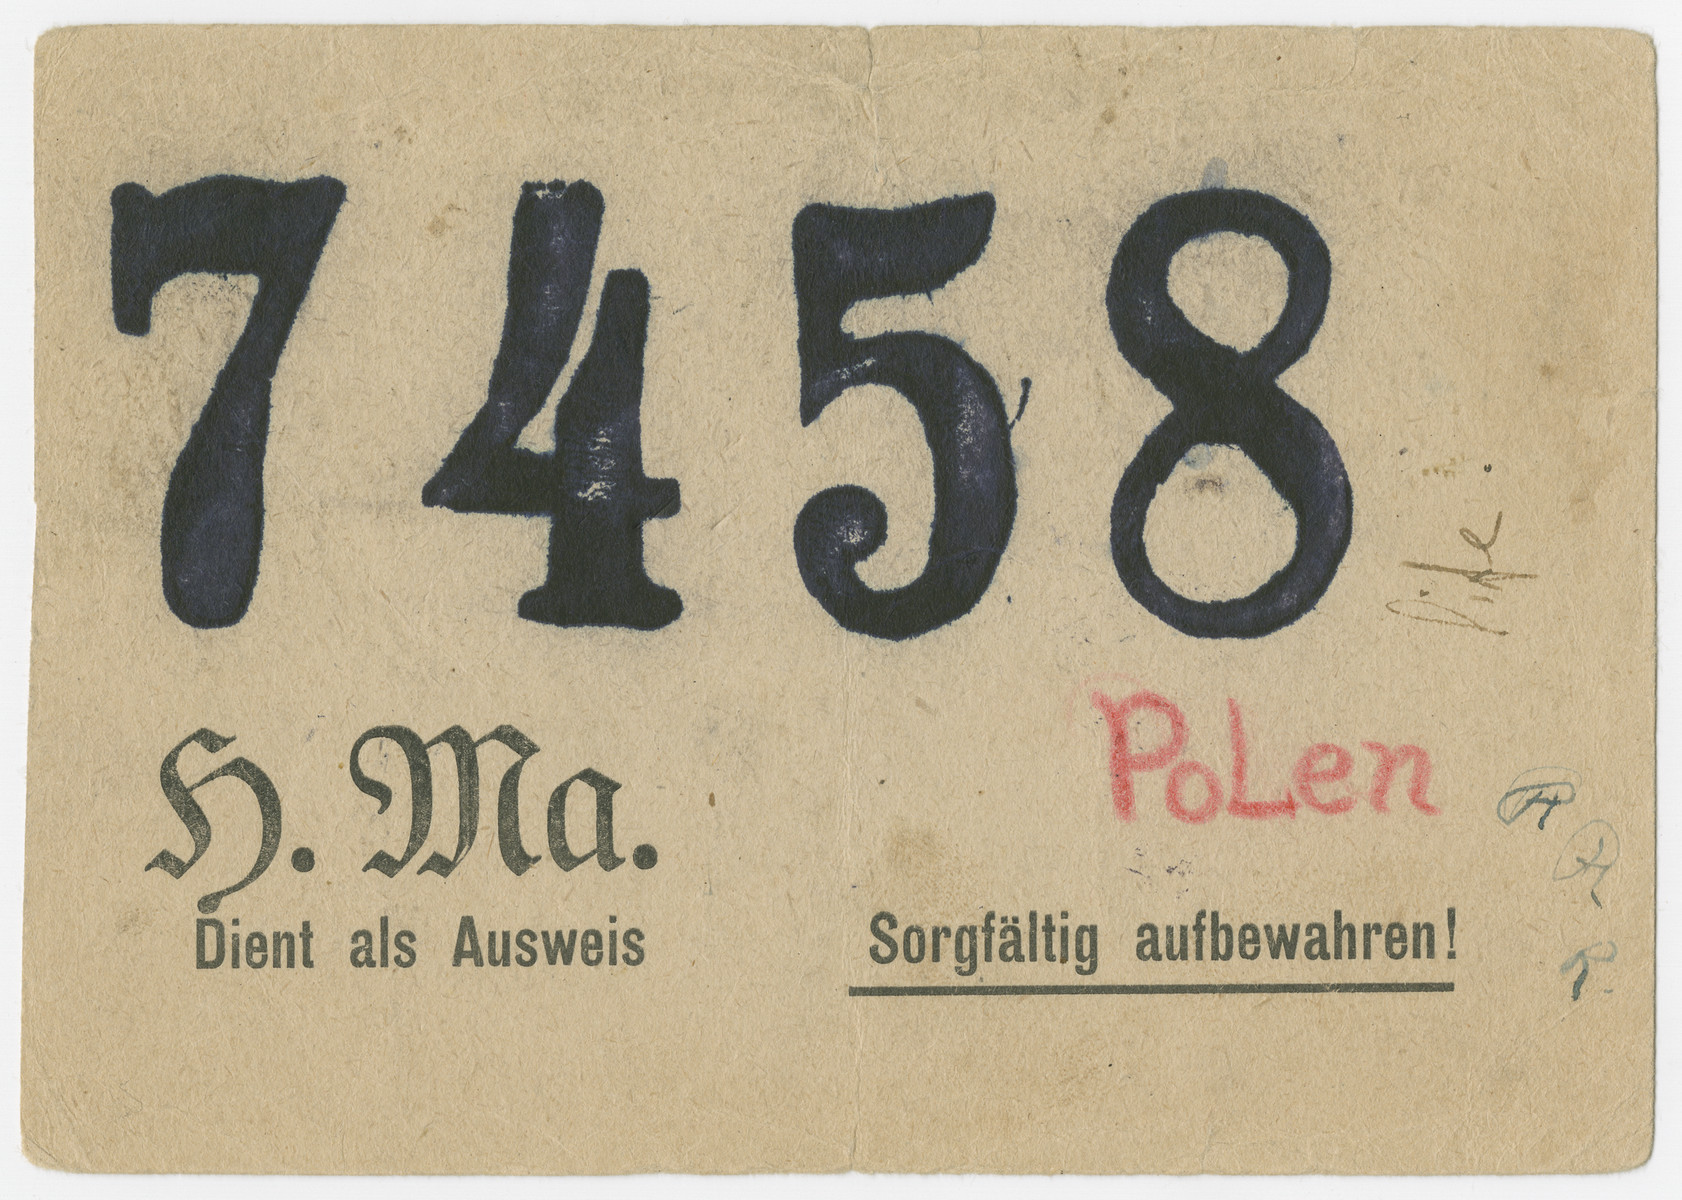 A temporary identification card issued to a Polish Jewish girl, Pola Fogelman, under a false name:  Pelagia Pisula.  The verso of the card has the prisoner number  7458.  The false last name is the name of her rescuer, Natalia Pisula.  The pass was used for Pola to get in and out of the Primerwald labor camp/munitions factory.